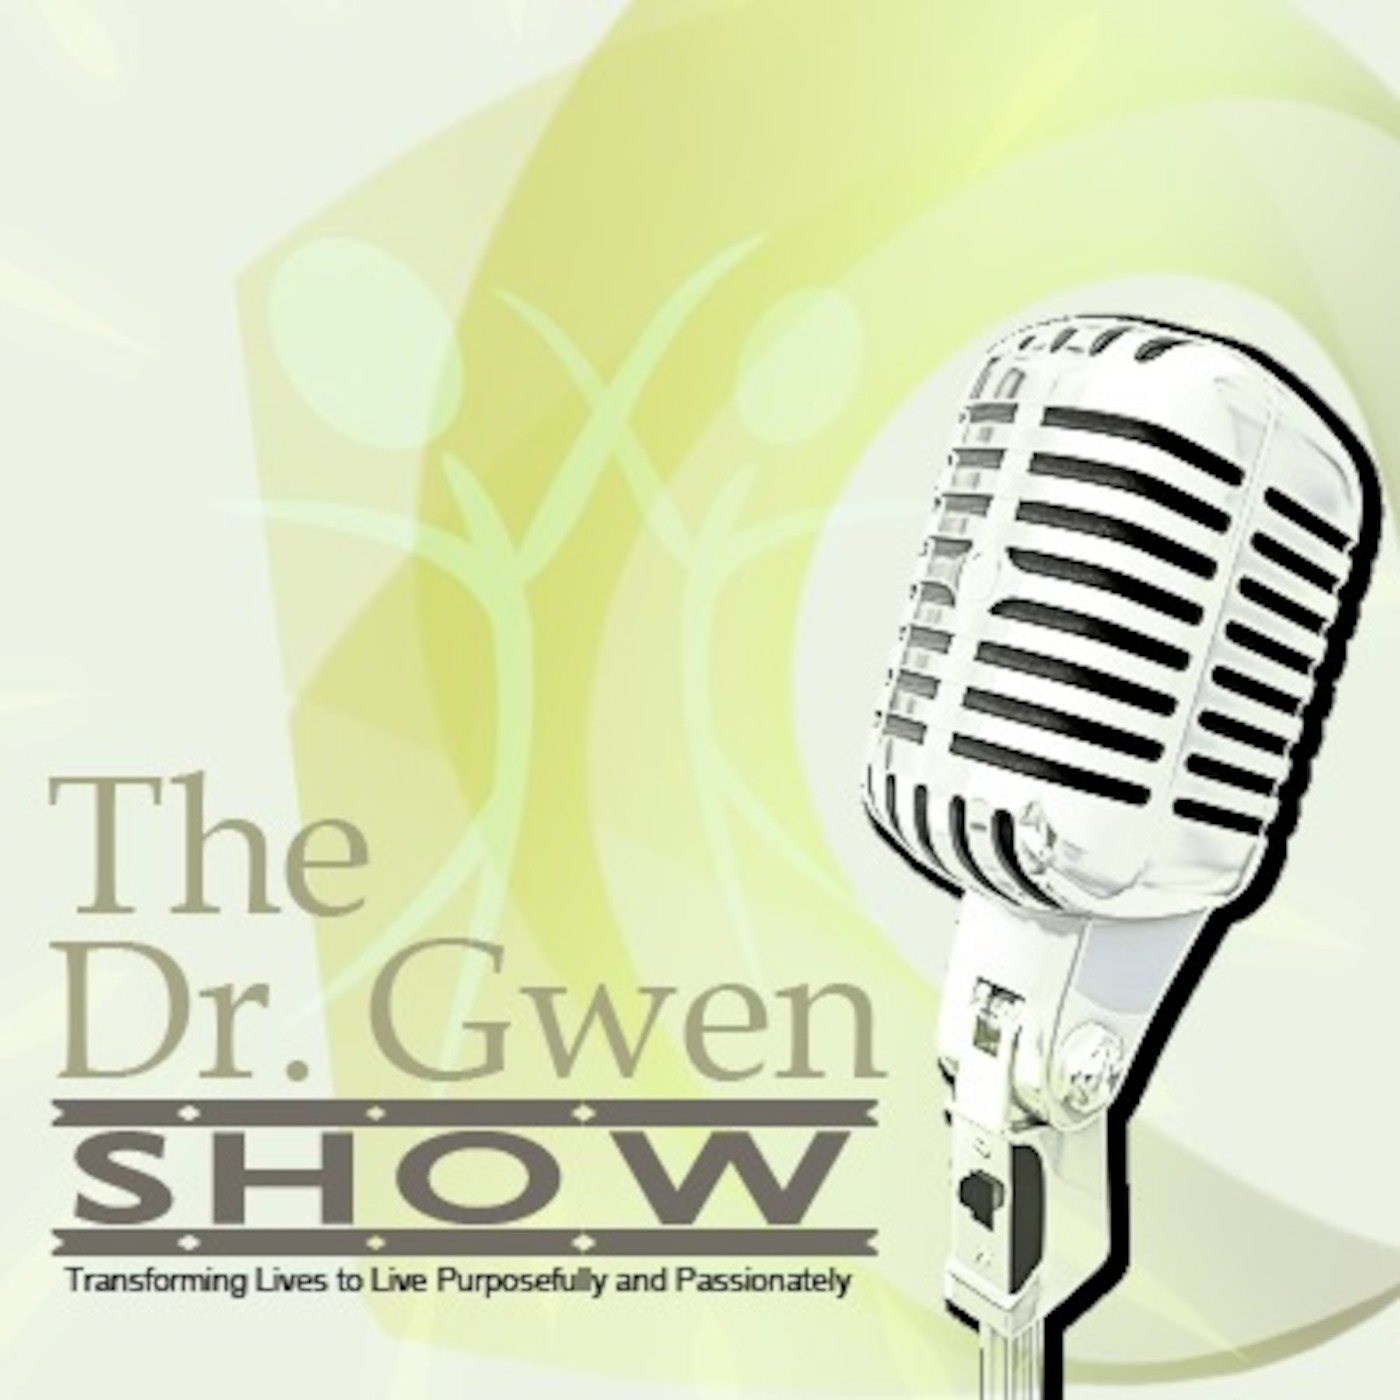 The Dr. Gwen Show